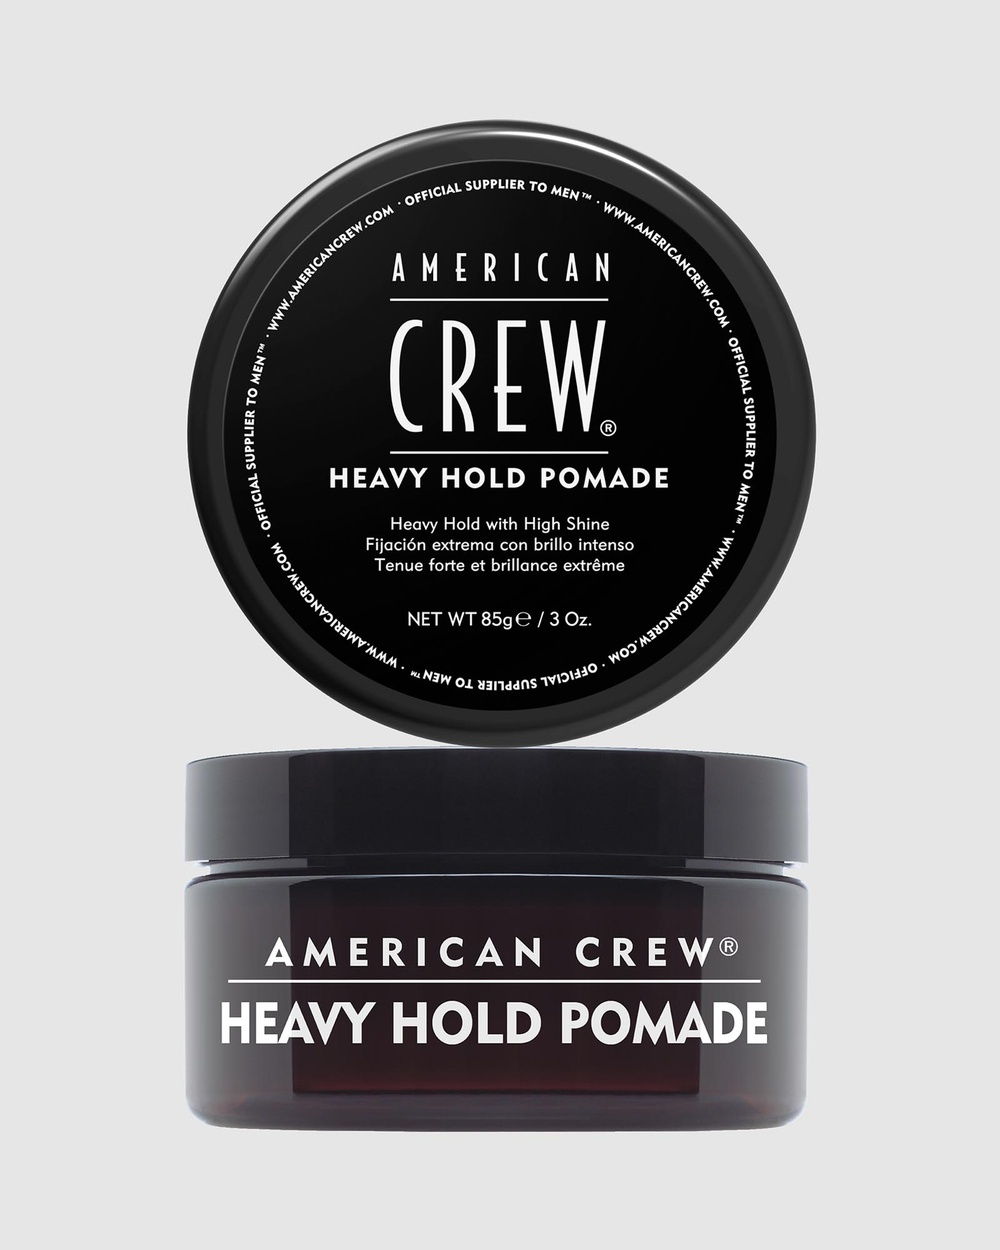 American Crew Heavy Hold Pomade 85g Beauty Brown & Black